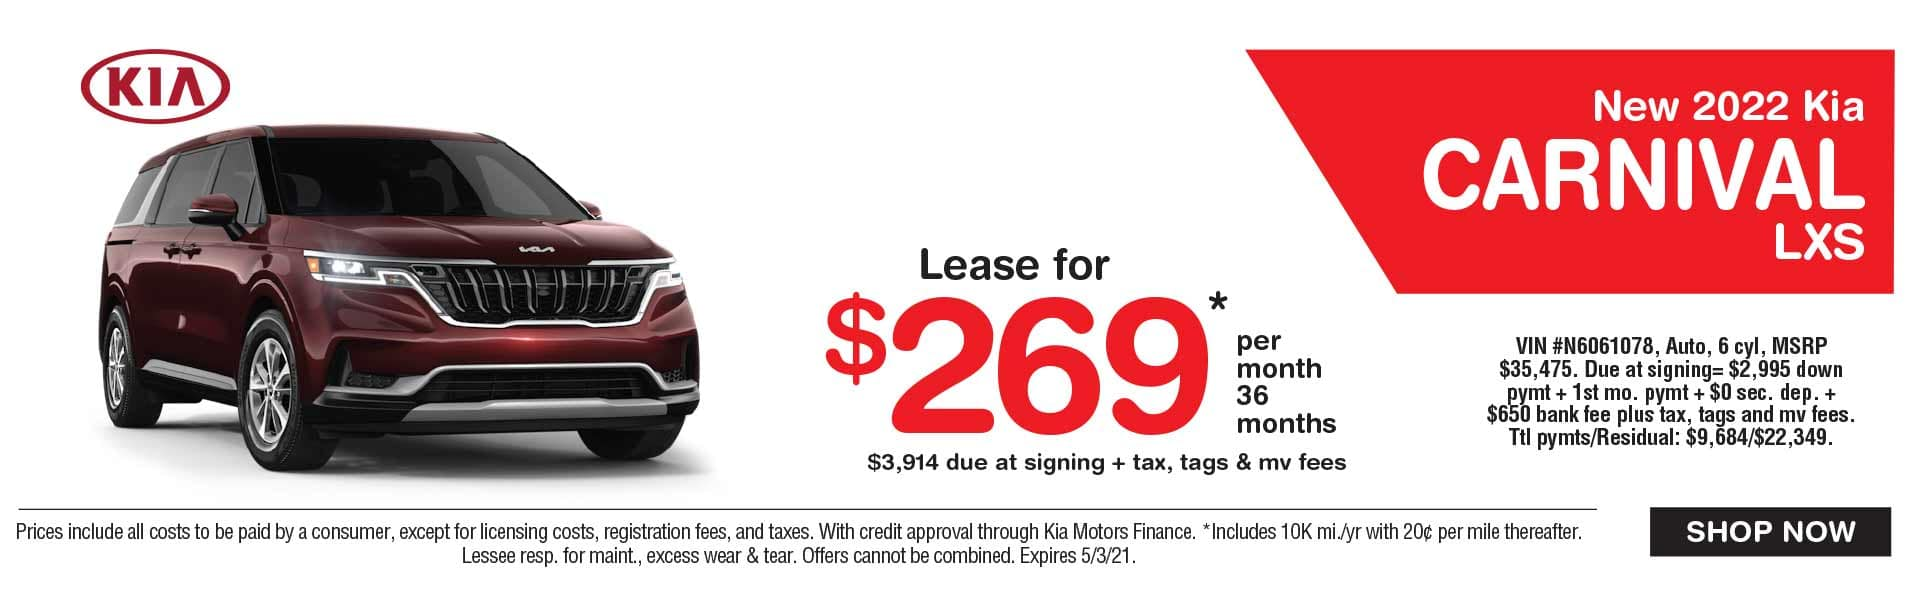 Kia Carnival Lease Spring Savings Kia Dealer NJ near me